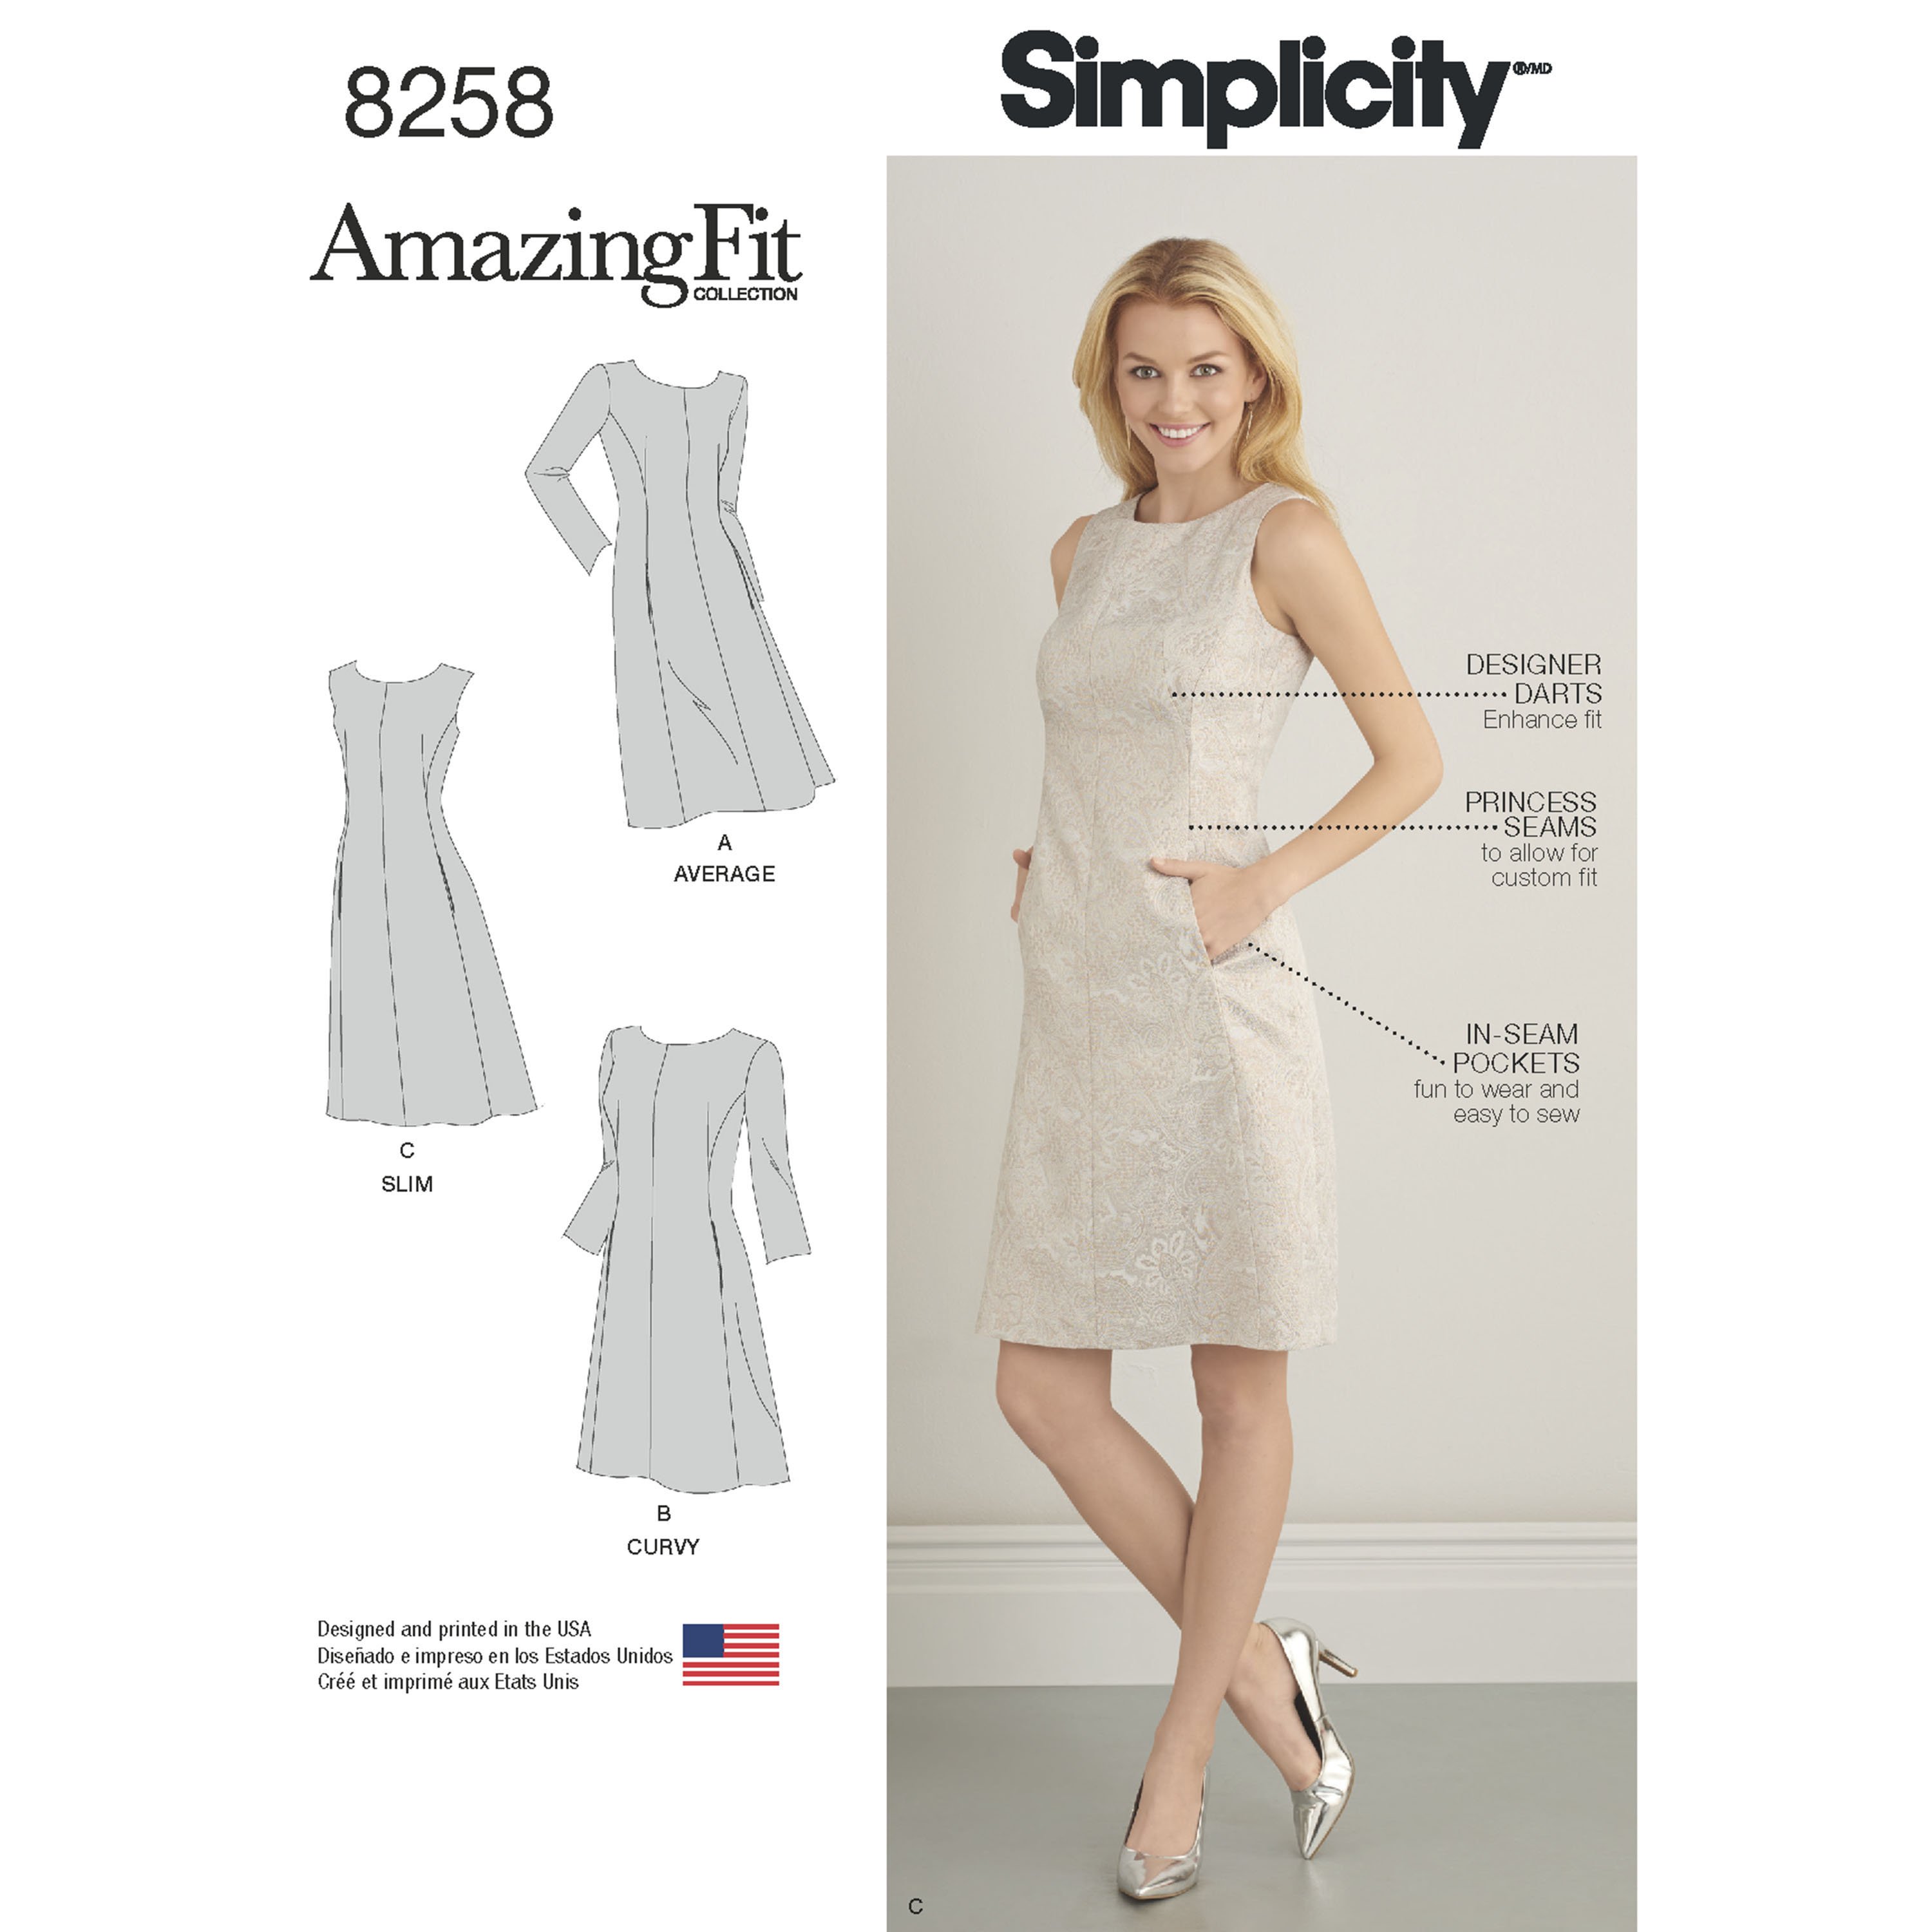 Simplicity Pattern 8258 Misses and Plus Size Amazing Fit Dress, Size BB (20W-28W)